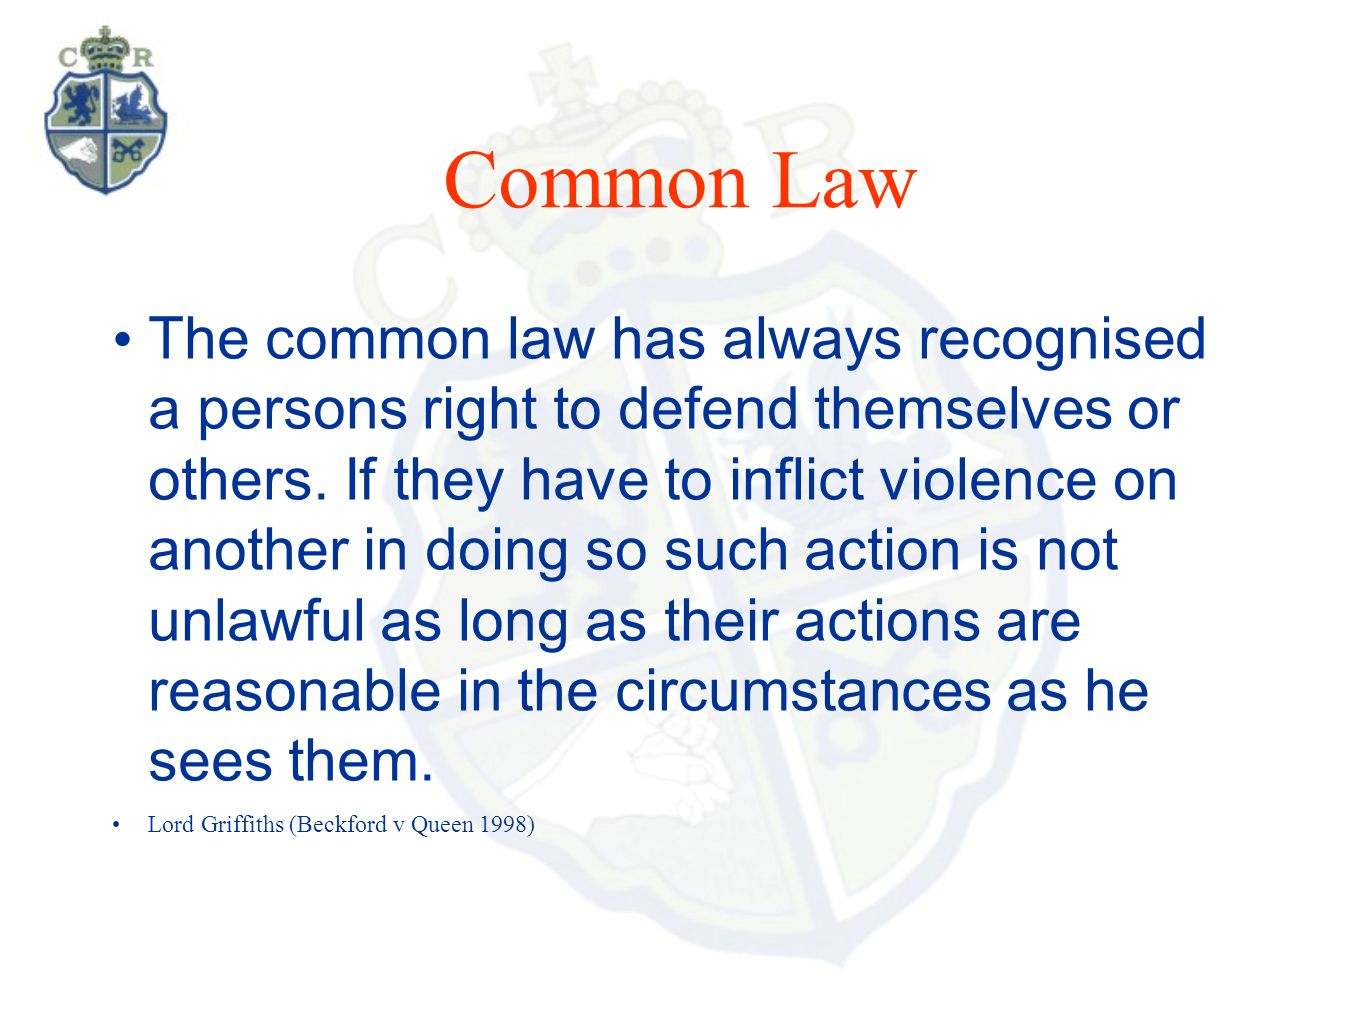 Common Law The common law has always recognised a persons right to defend themselves or others. If they have to inflict violence on another in doing s